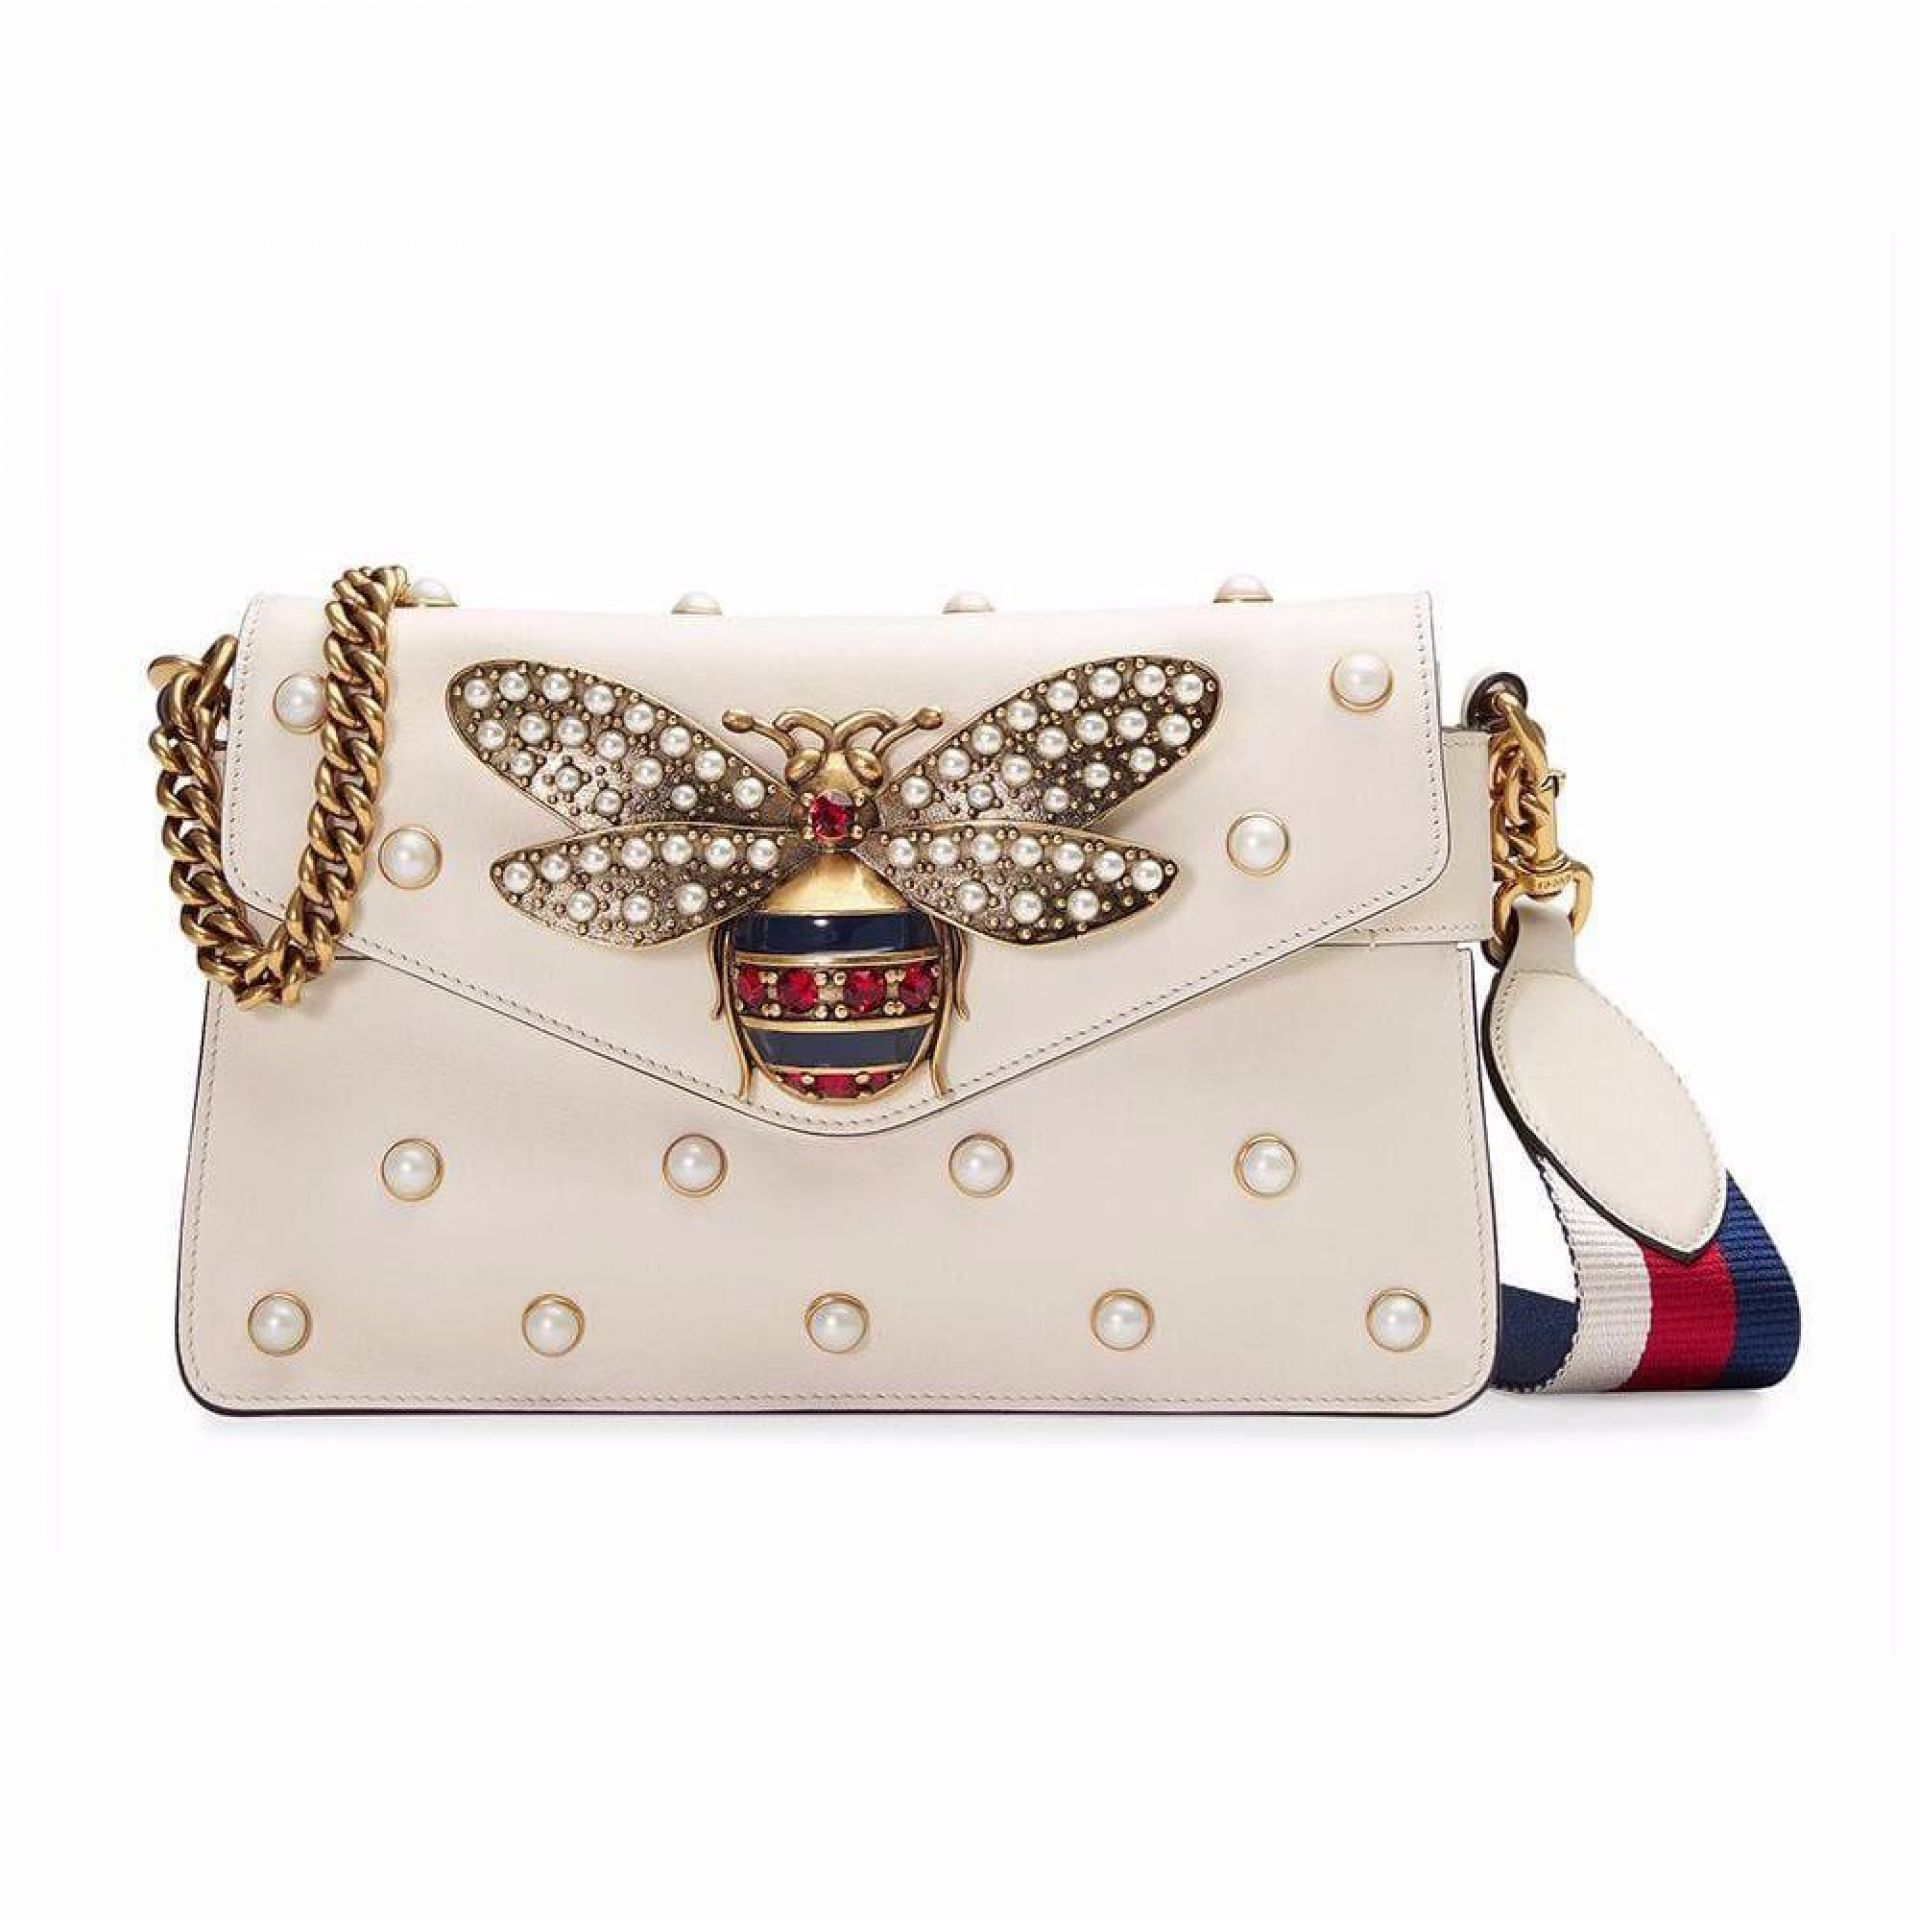 GUCCI BROADWAY WHITE LEATHER CLUTCH